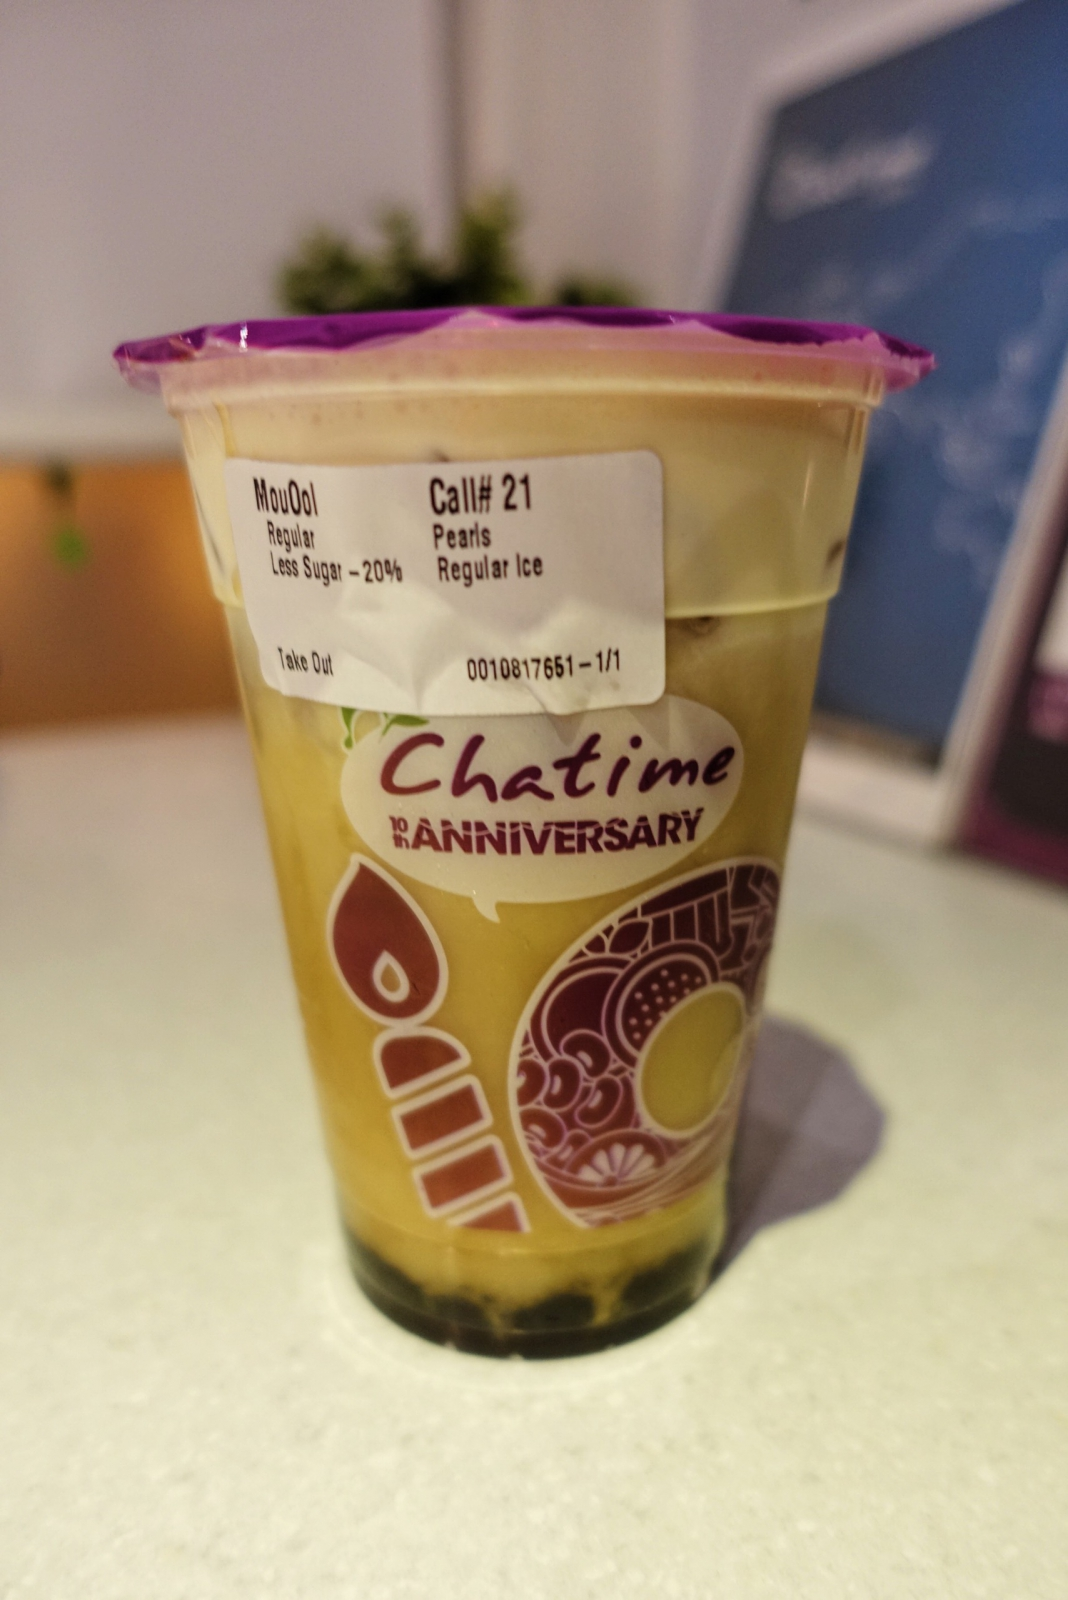 Chatime oolong tea mousse with pearls